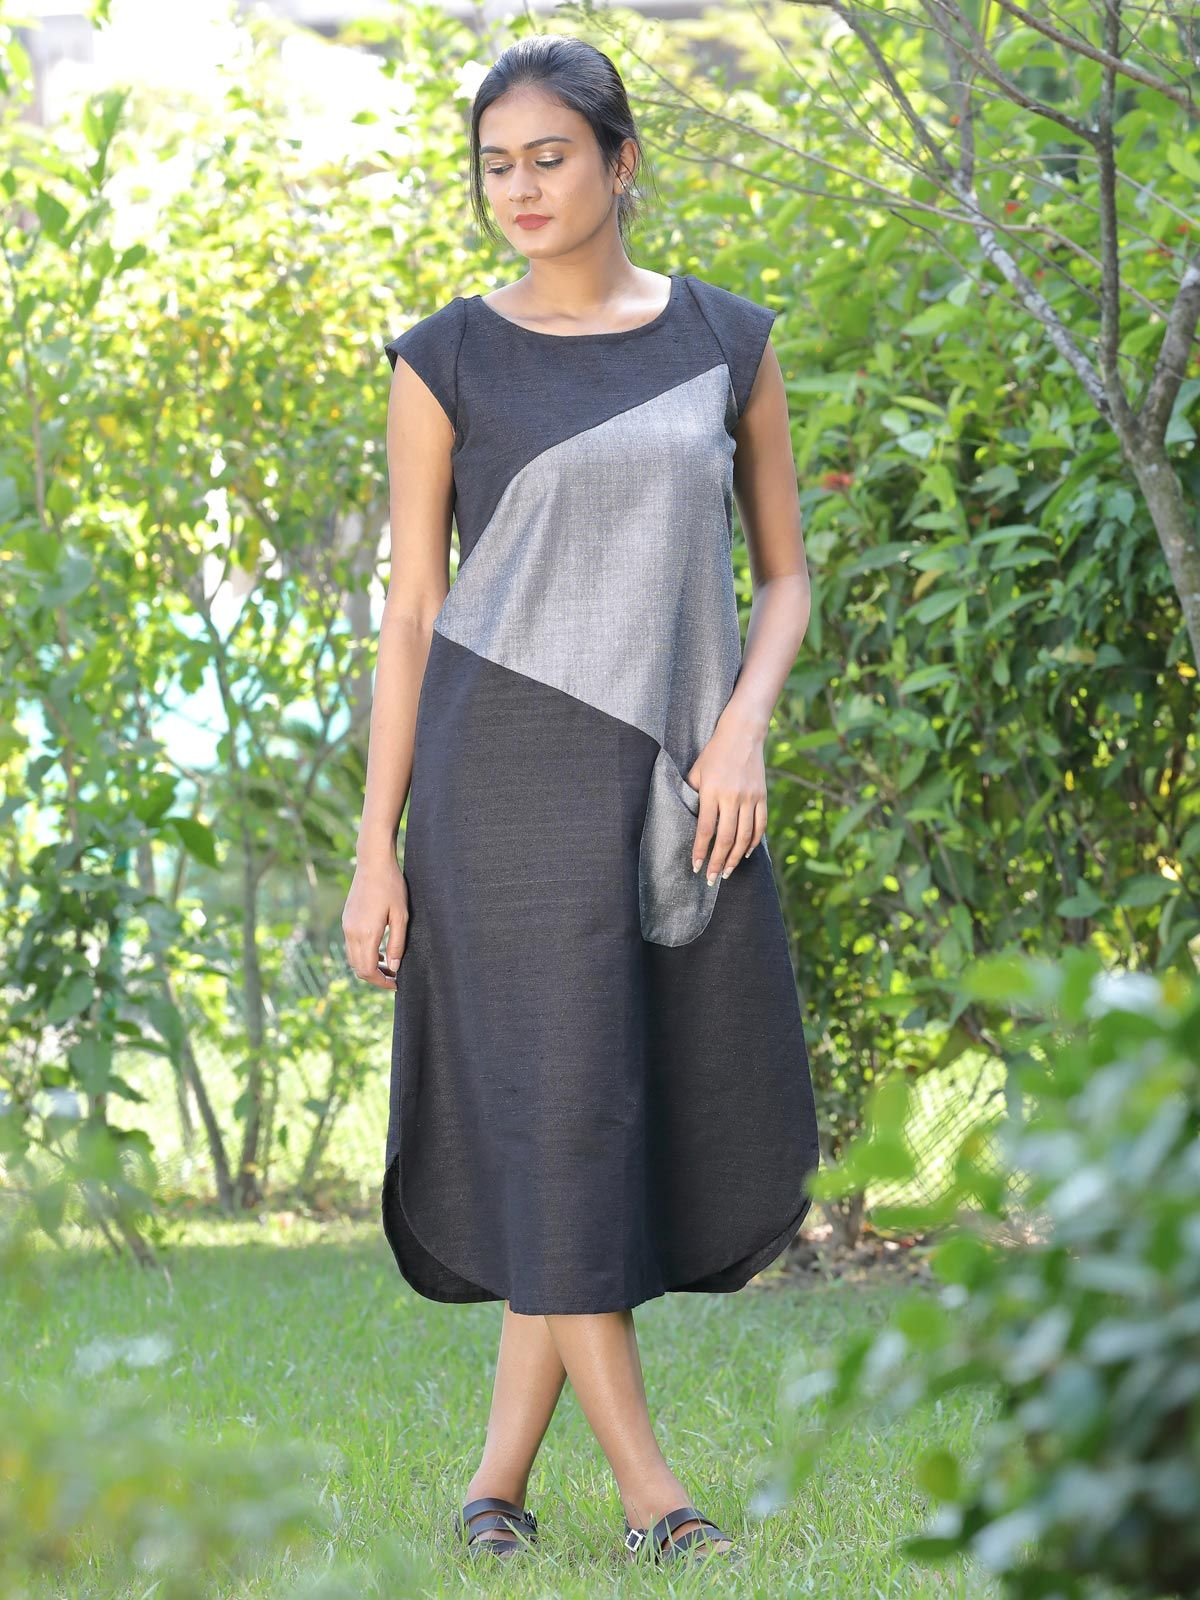 Black and grey diagonal patchwork dress with contrast pocket